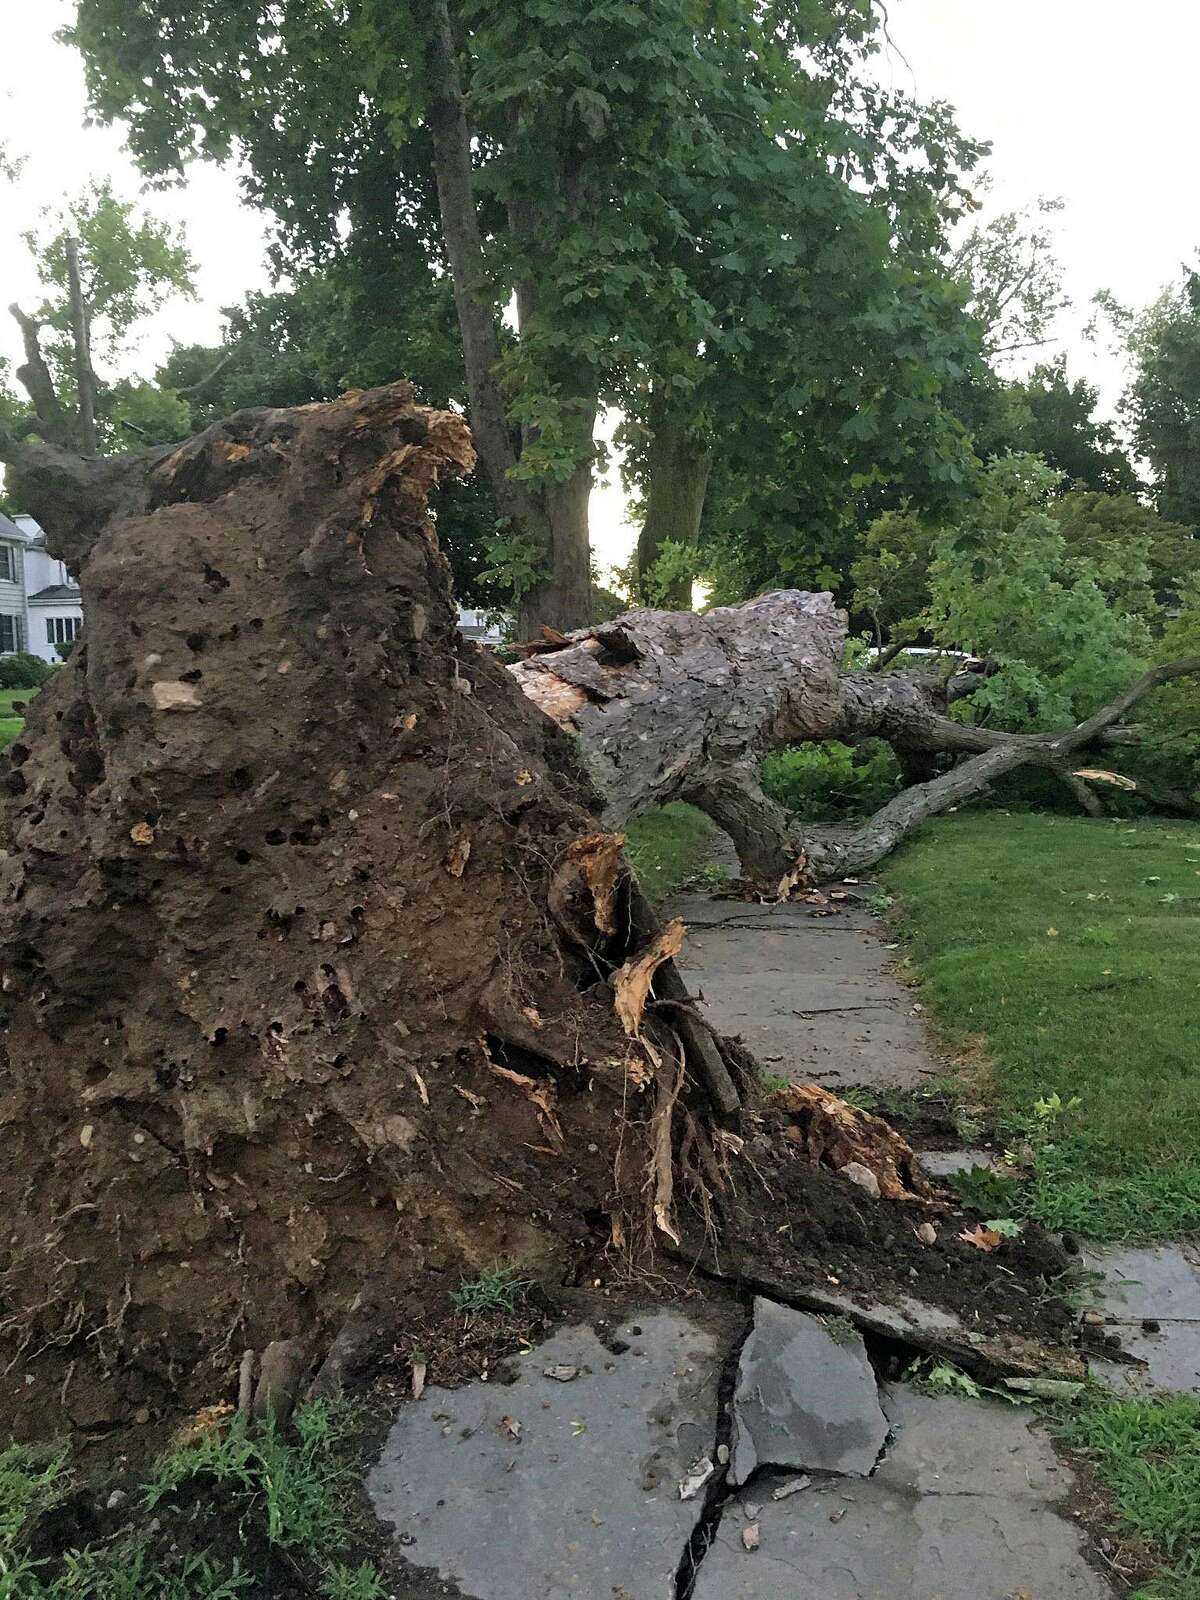 A tree uprooted by tropical storm Isaias on Danbury's Deer Hill Avenue.